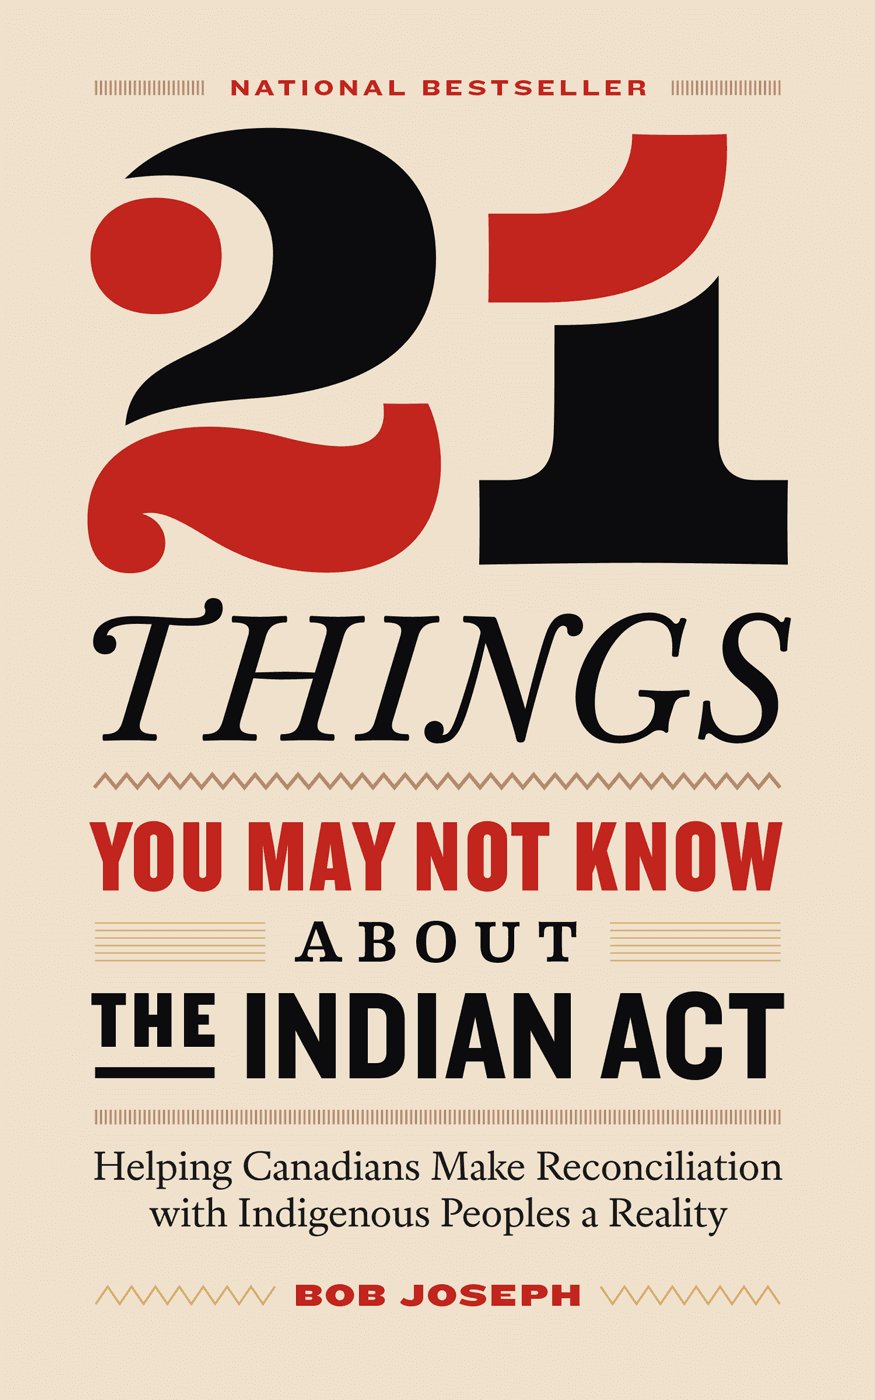 21 Things You May Not Know About the Indian Act - National Bestseller